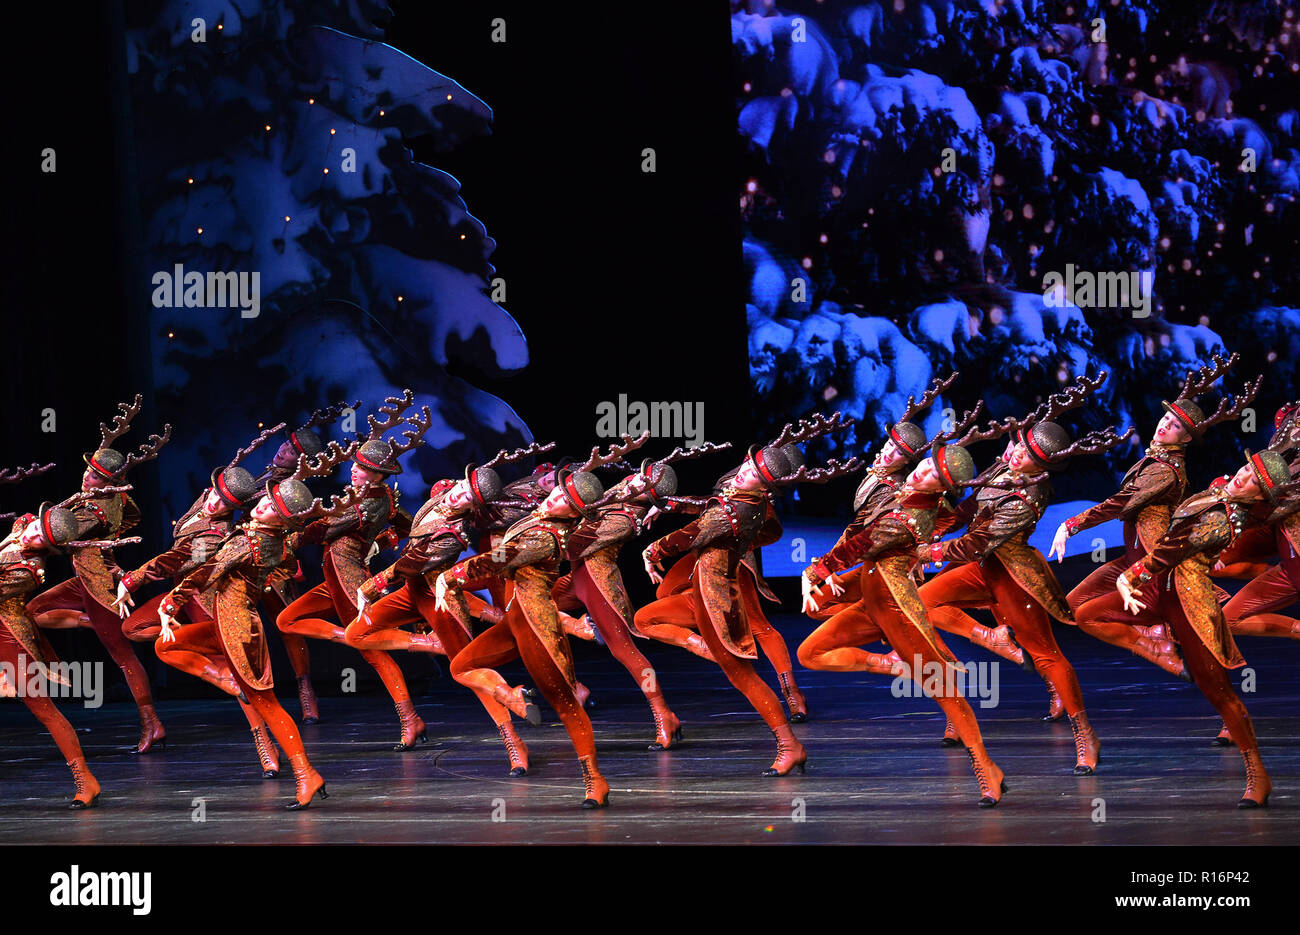 Christmas Music On Radio 2019 New York, Nov. 9. 1st Jan, 2019. The Rockettes perform during the